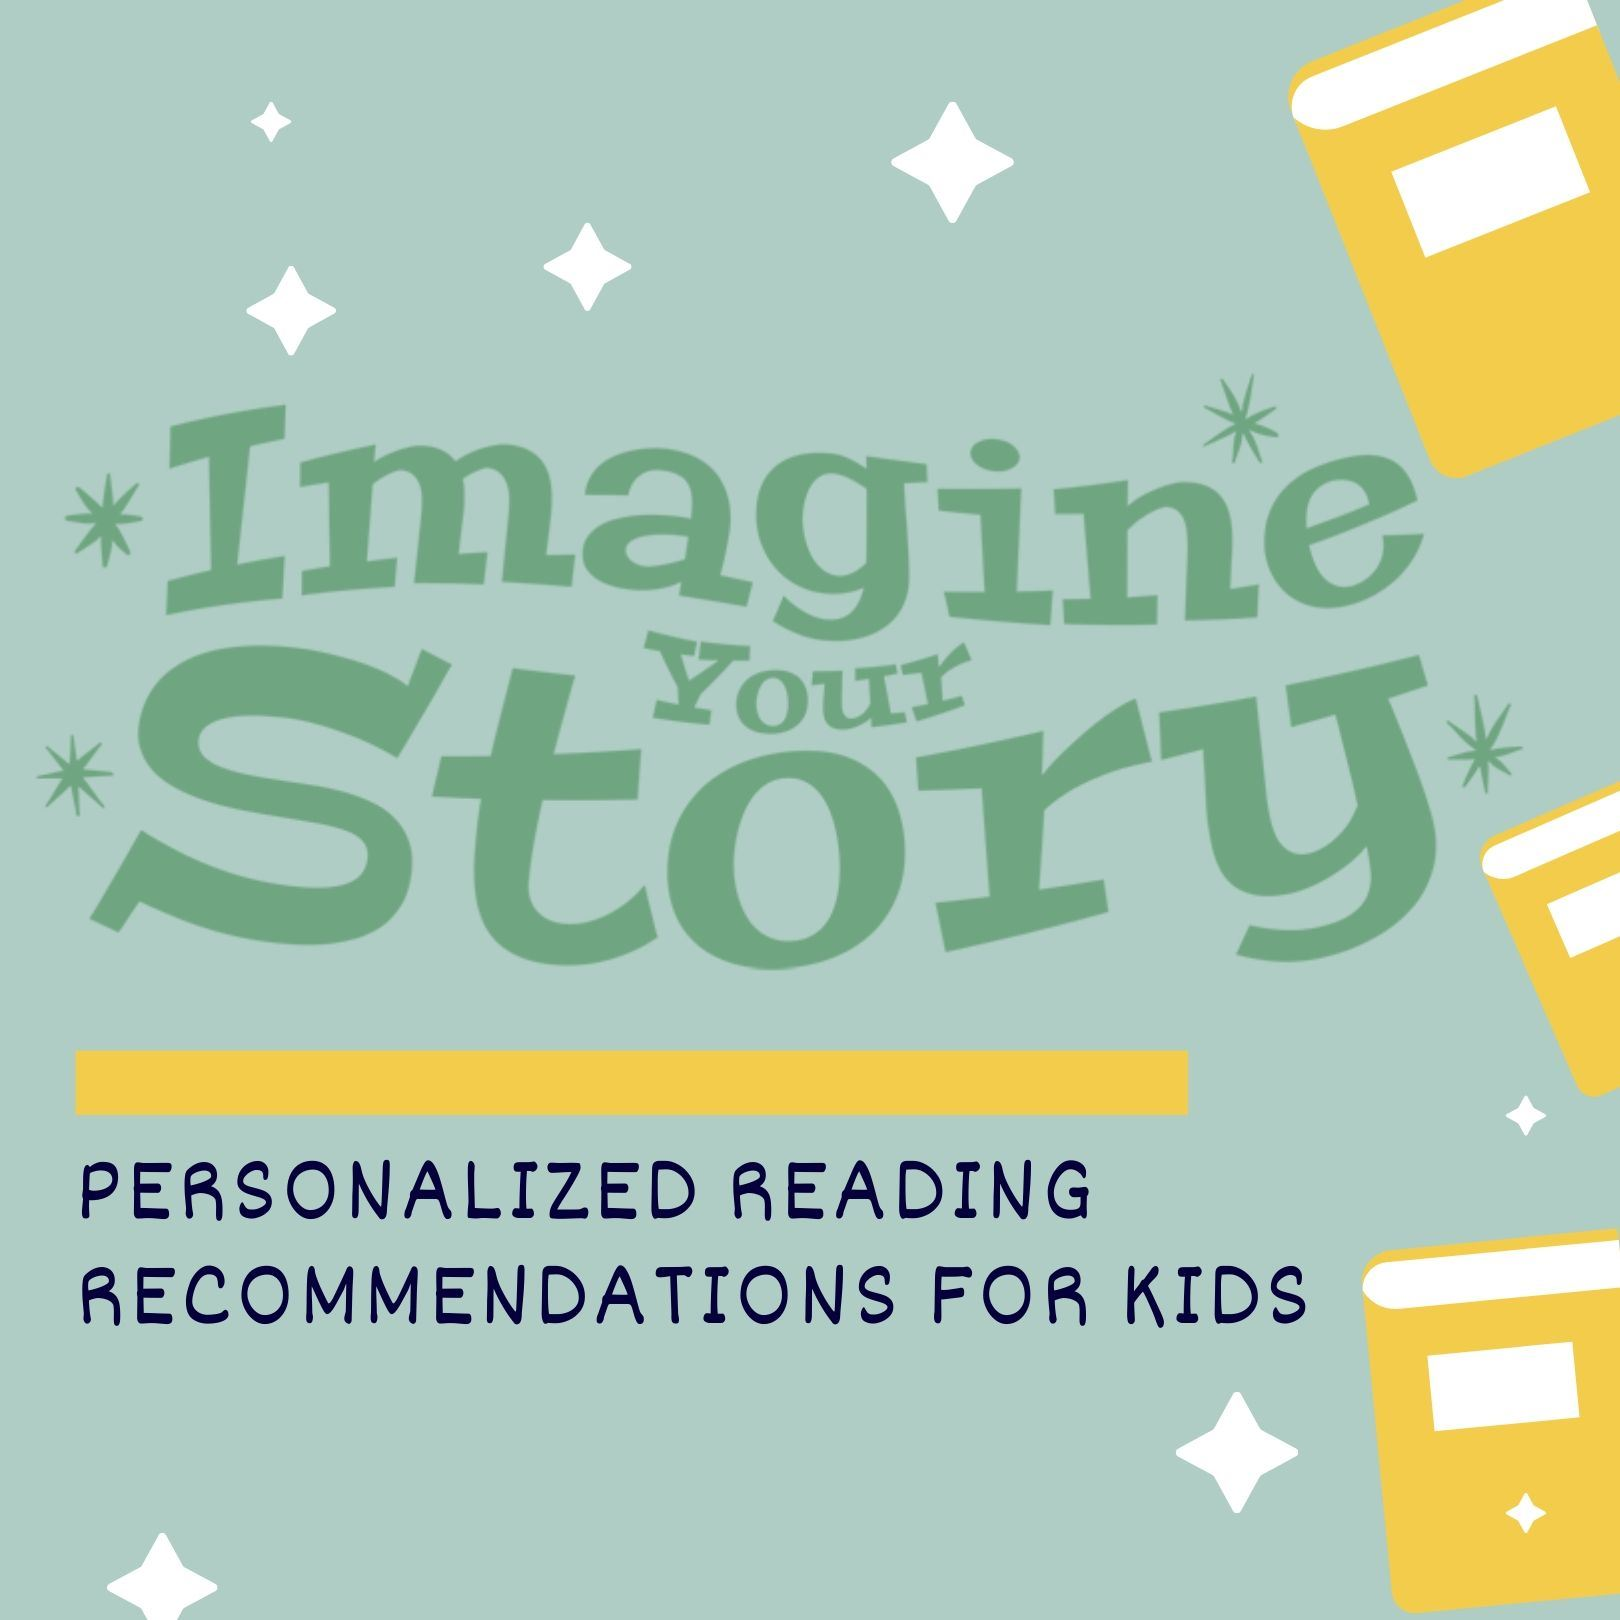 Personalized Reading Recommendations for Kids